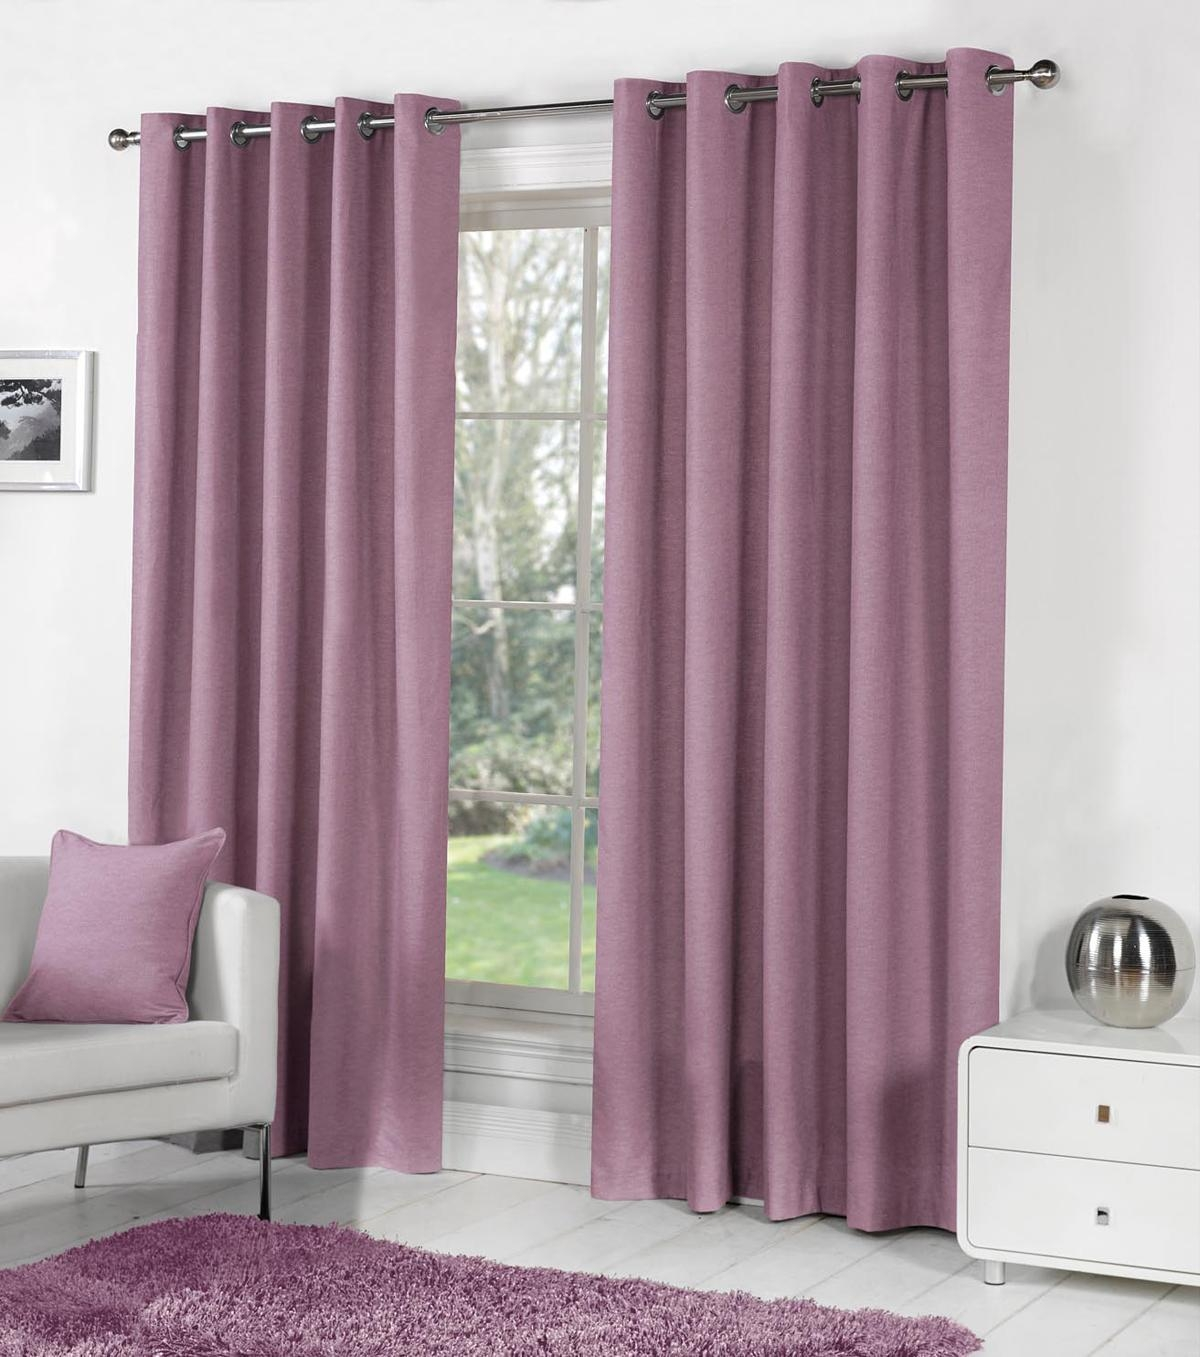 90 54 Curtains View Curtains Online Now Terrys Fabrics Pertaining To Ready Made Curtains 120 Inch Drop (Photo 7 of 15)